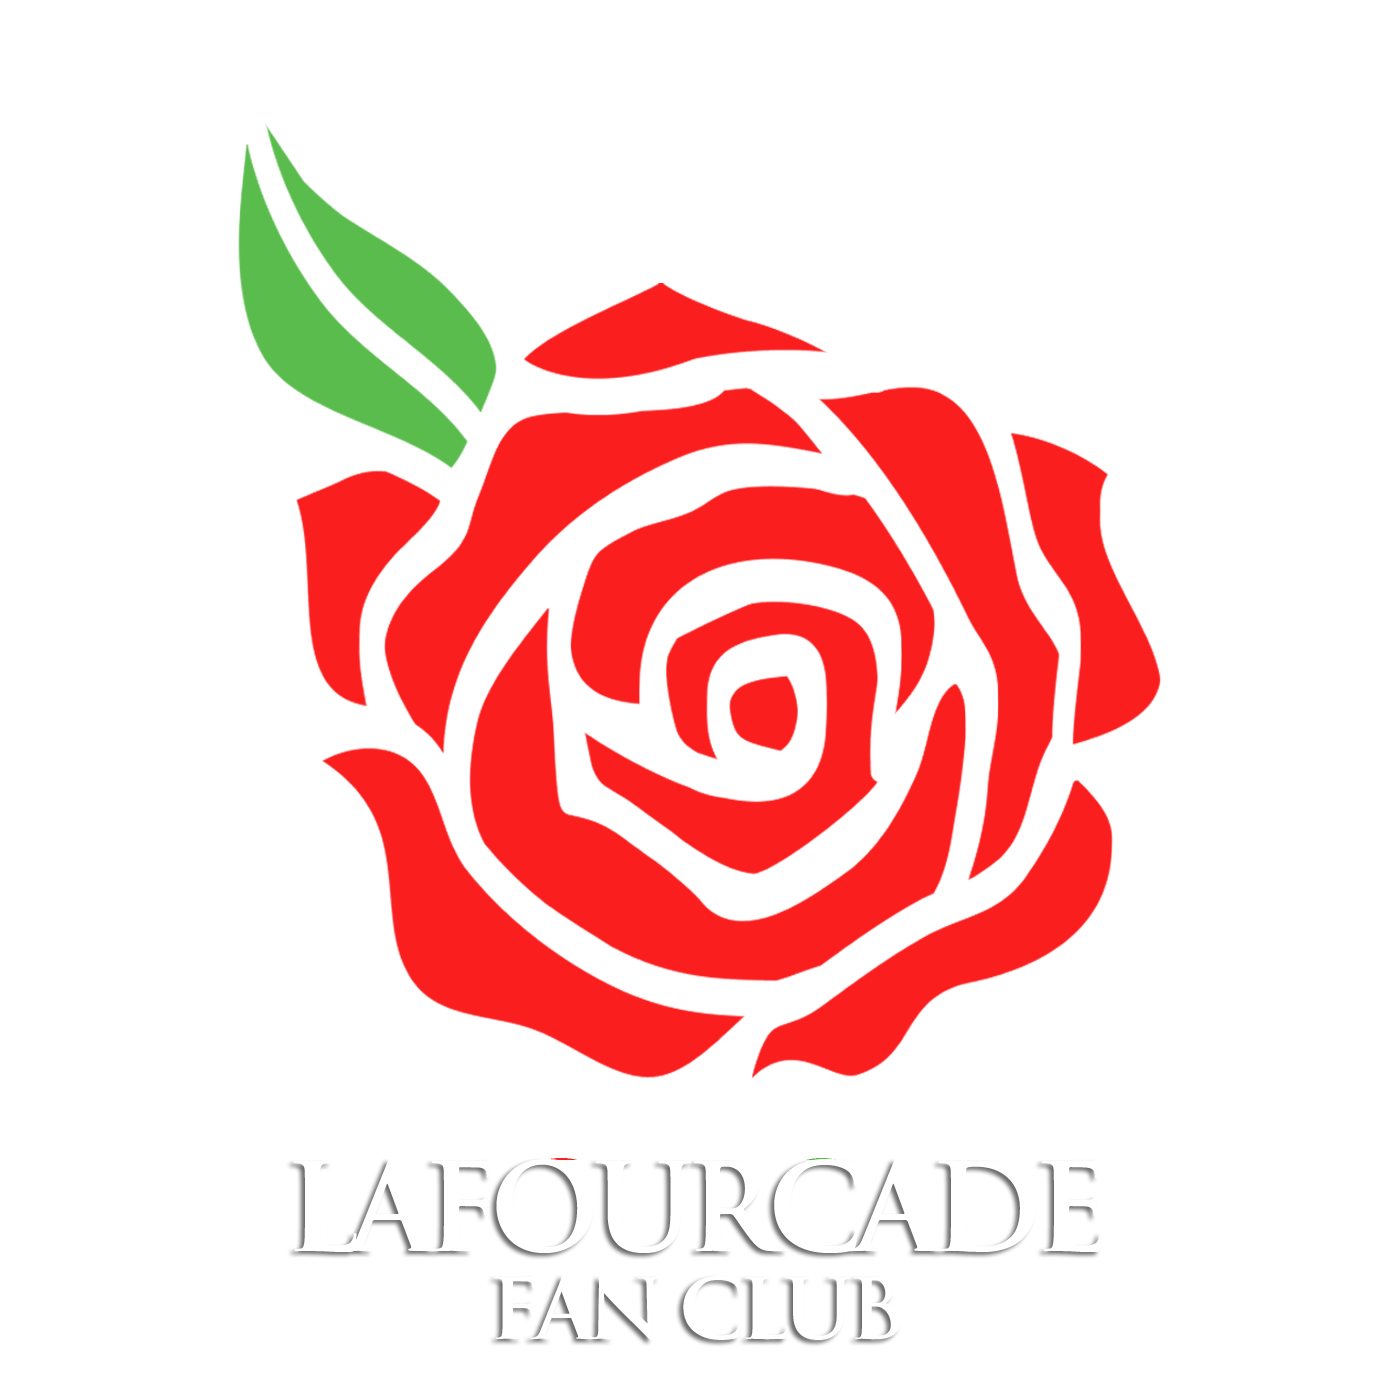 Lafourcade Fan Club